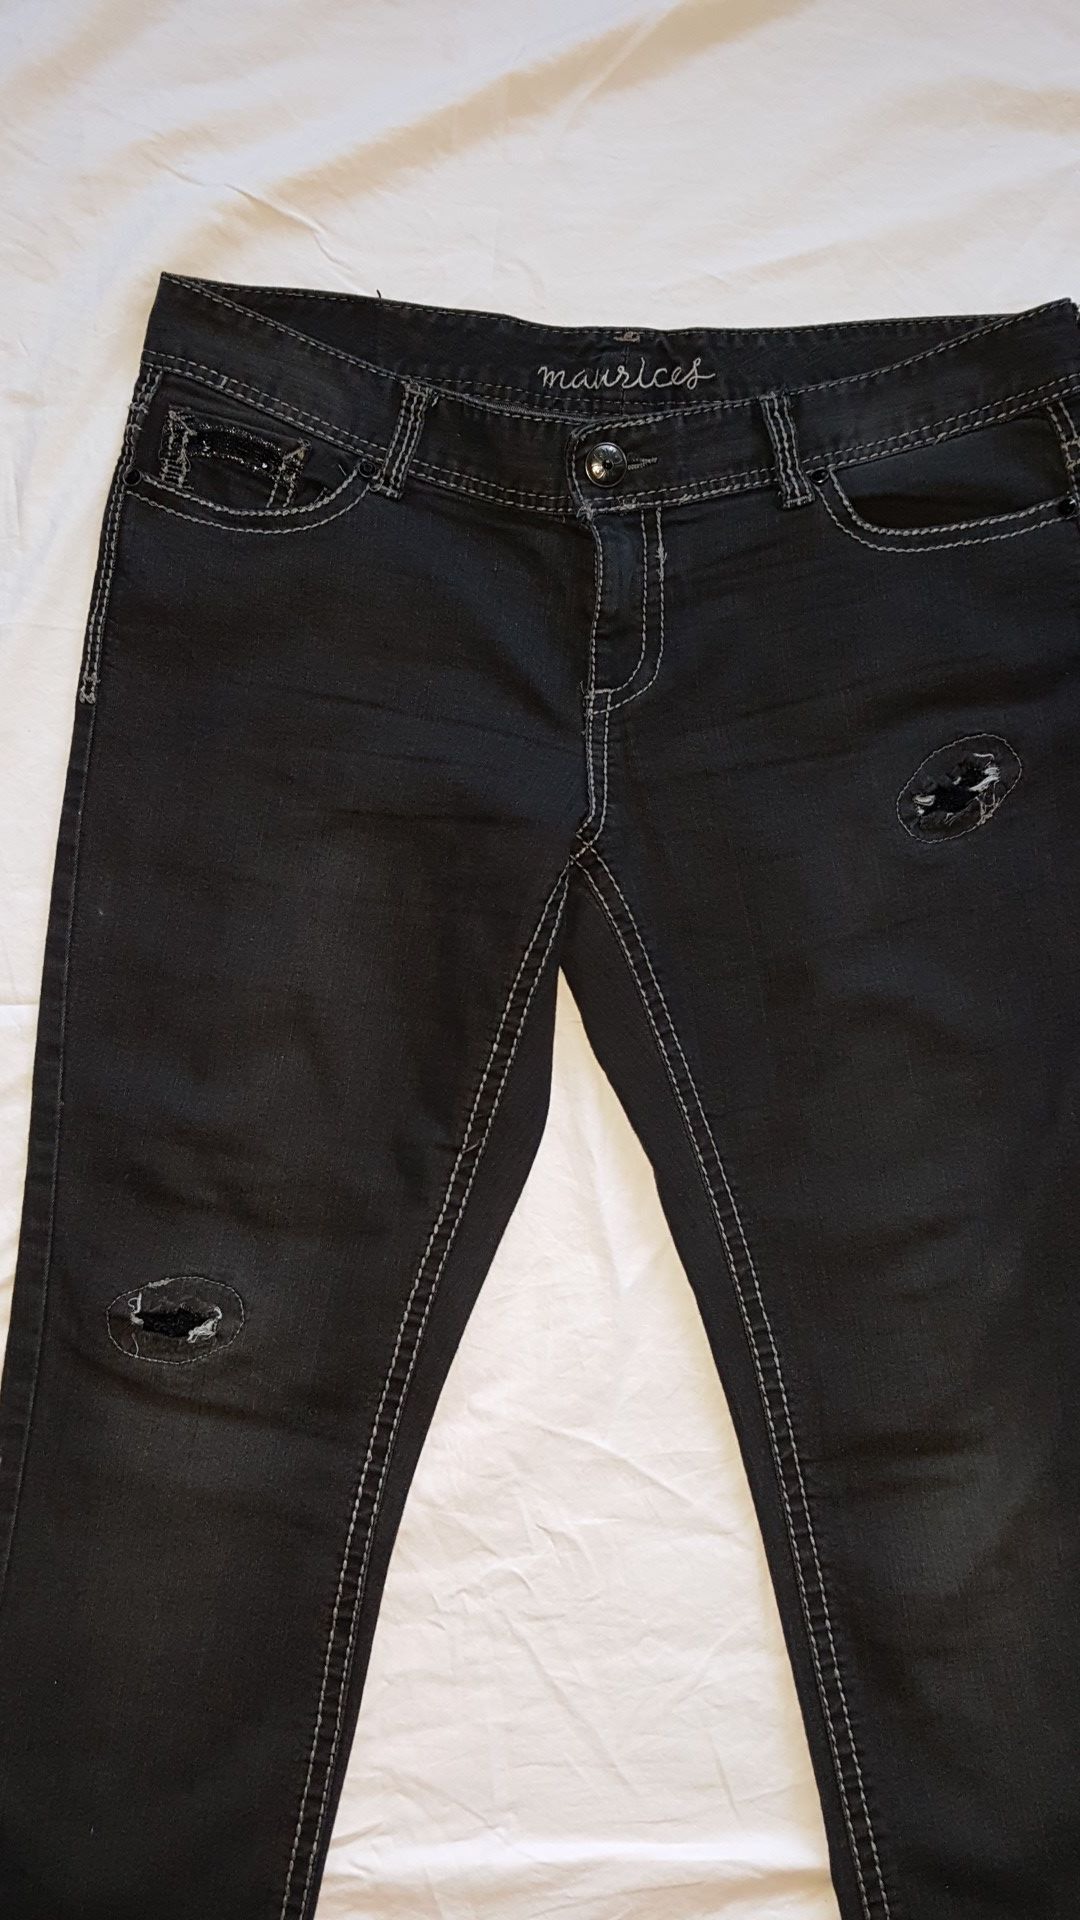 Matrices Skinny Jeans Xl